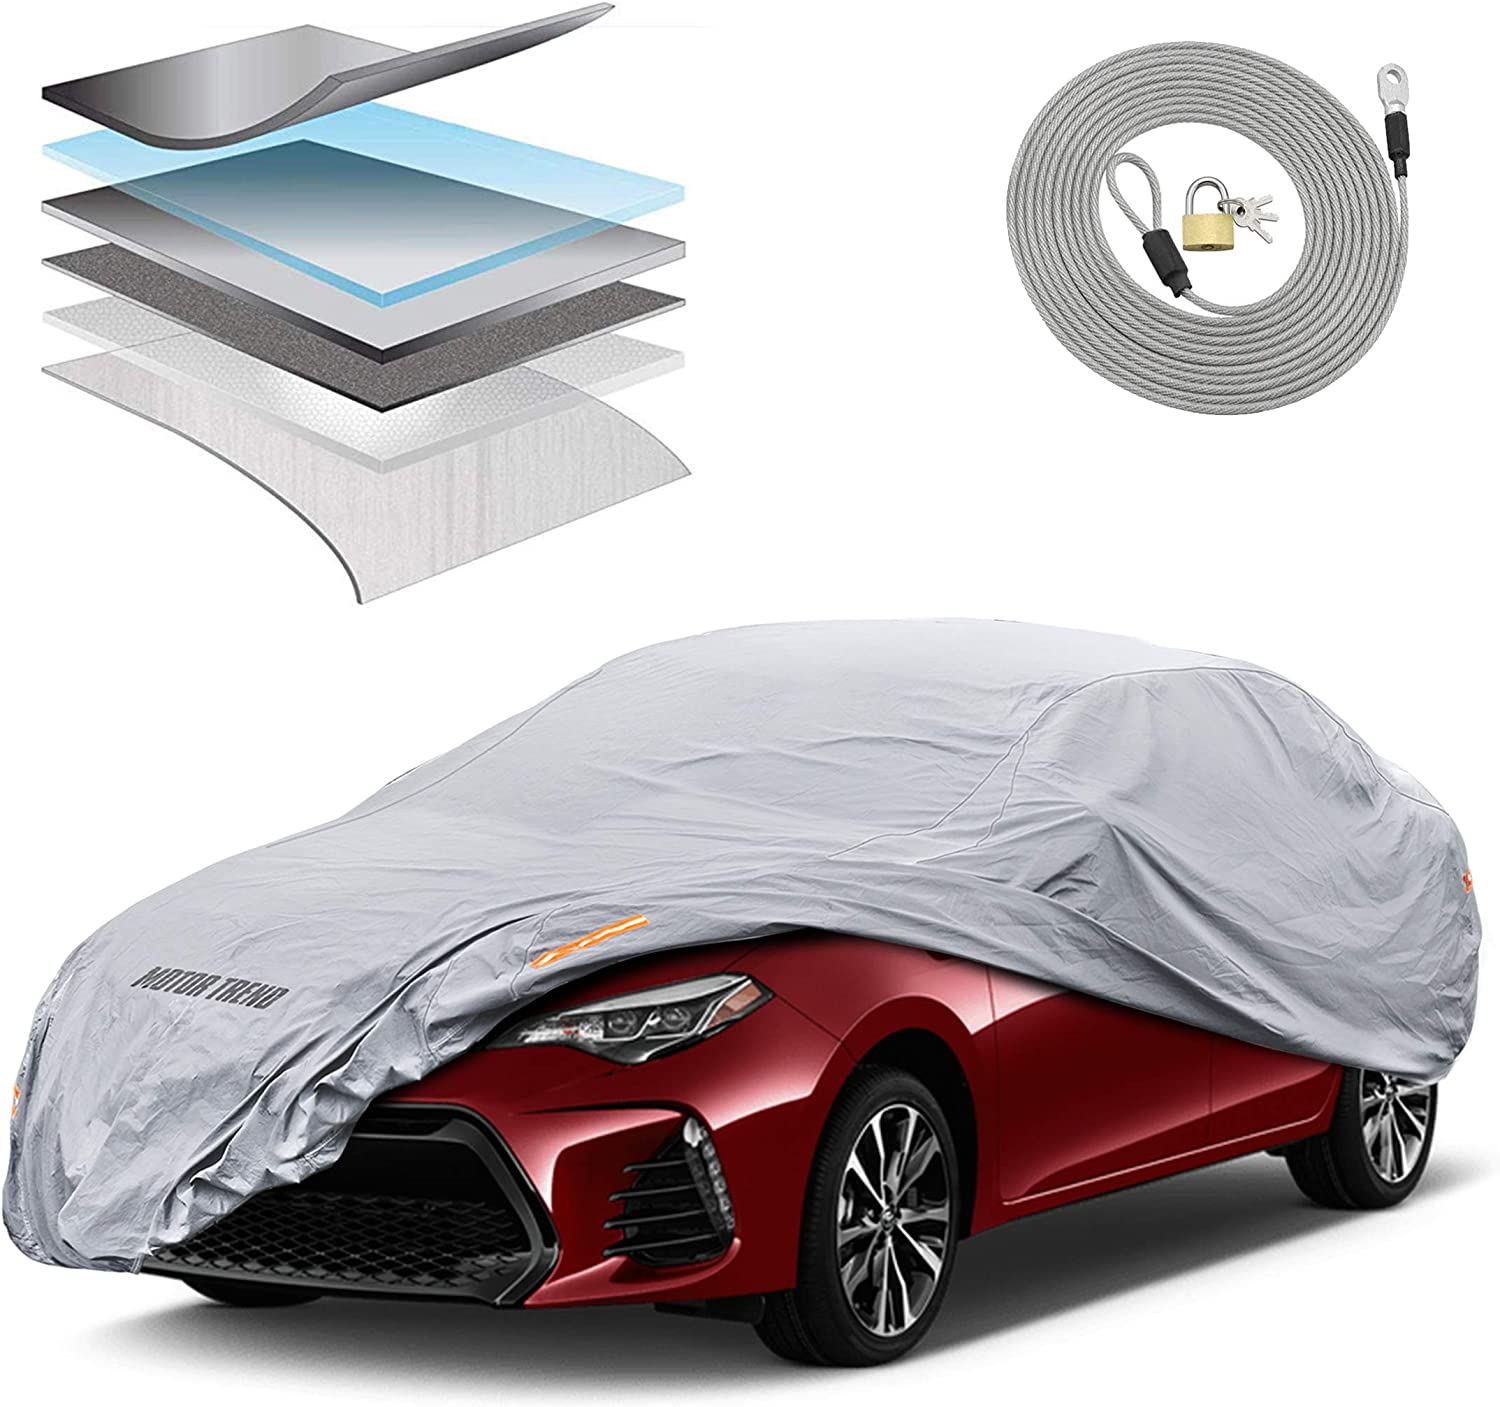 Motor Trend OC743 7-Series Ultra Protect Outdoor Car Cover Custom Fit for Toyota Corolla 2000-2018 Tight Seal Waterproof All Weather